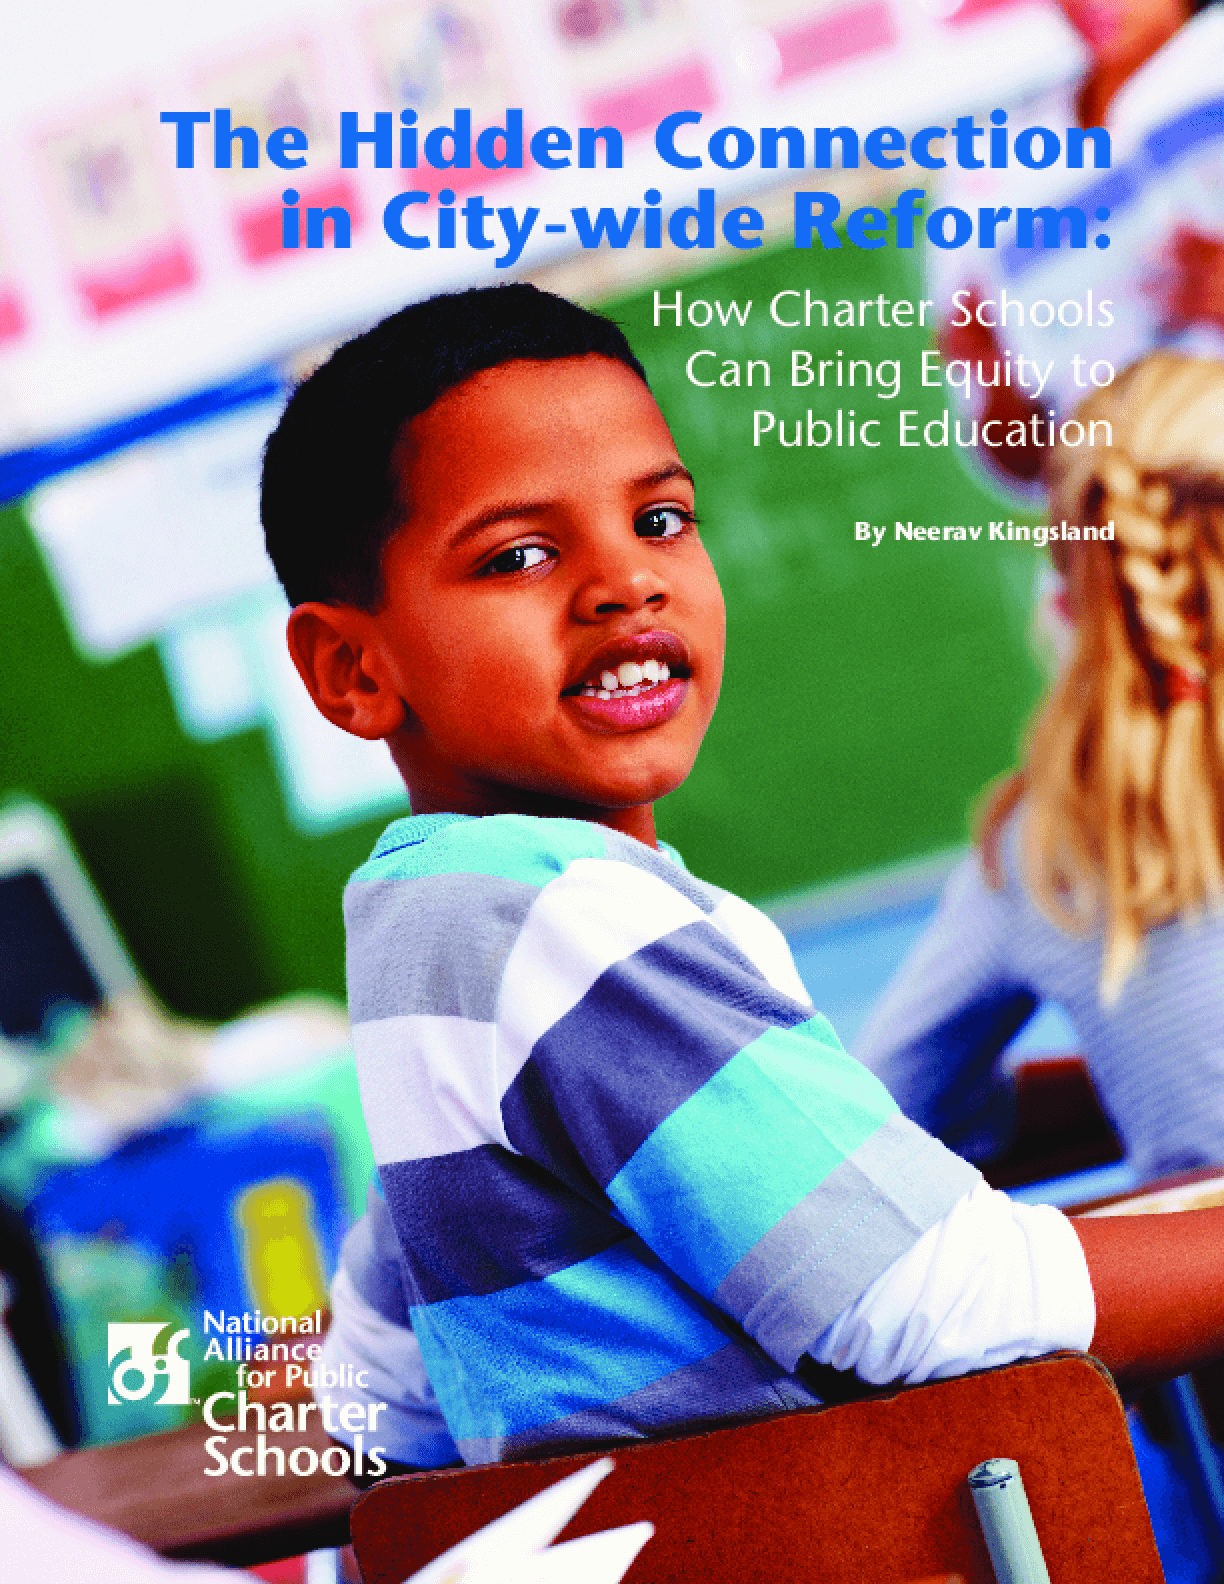 The Hidden Connection in City-wide Reform: How Charter Schools Can Bring Equity to Public Education